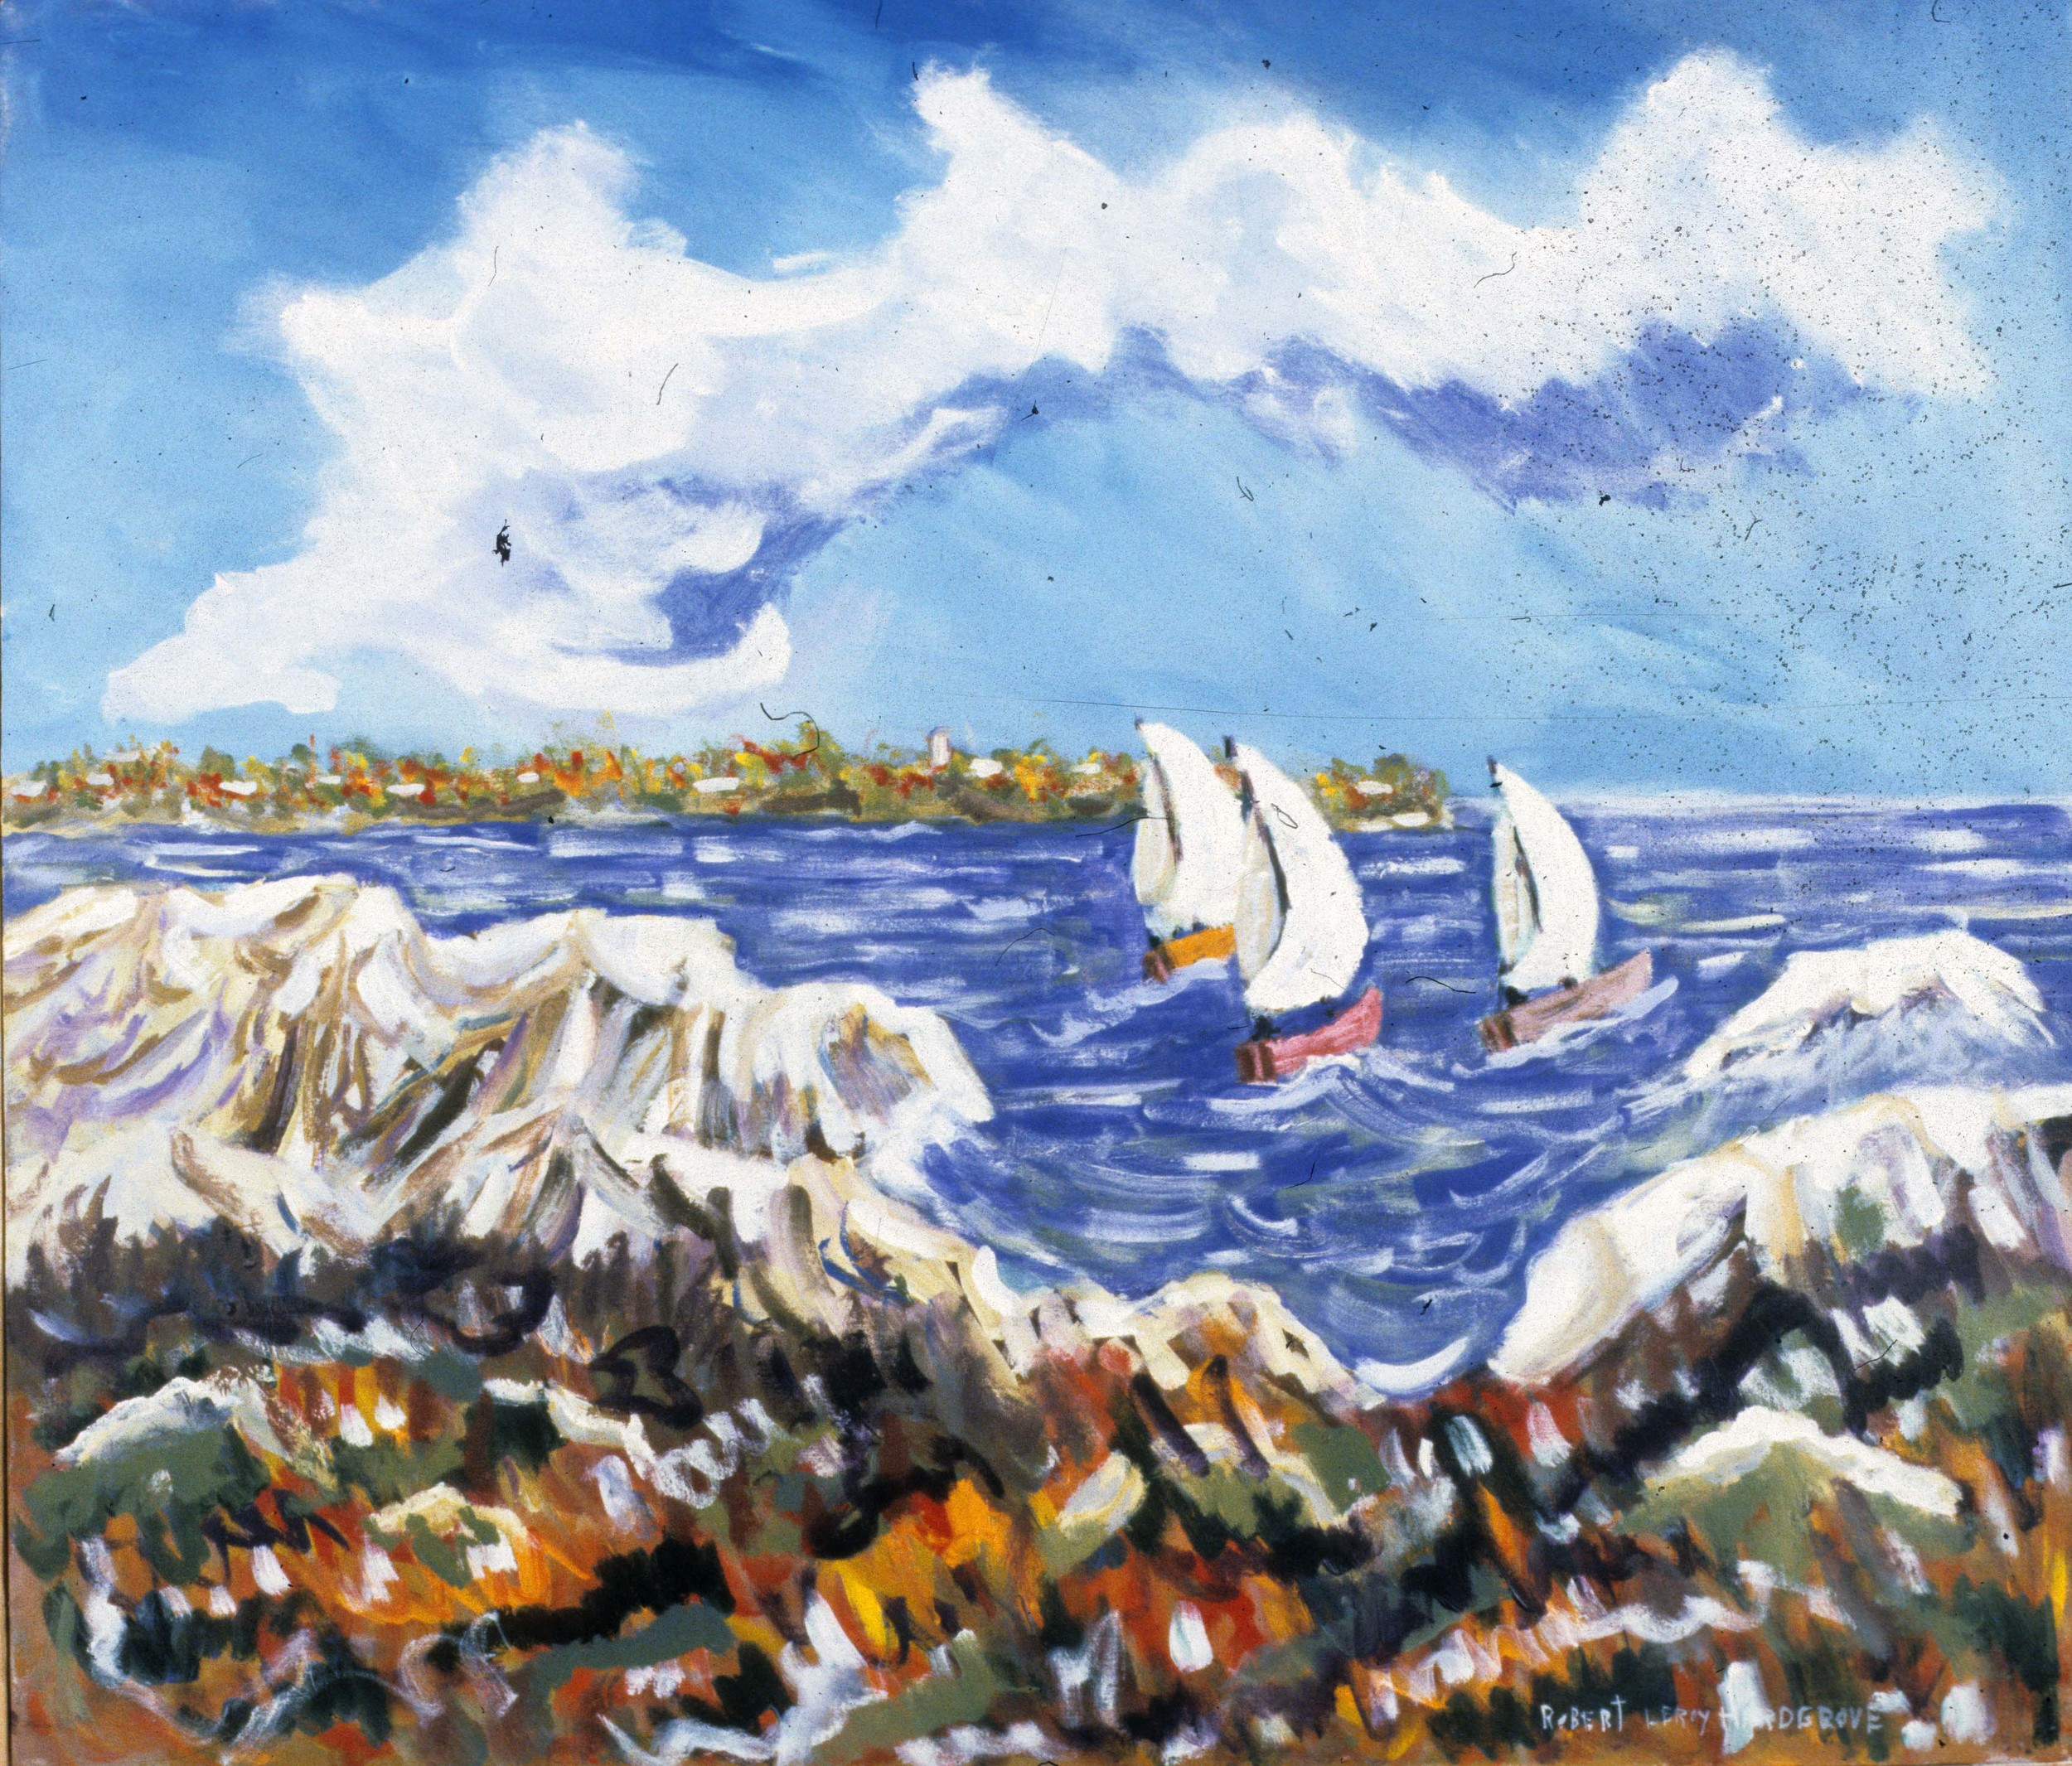 #251 Sailboats Near the Shore - Copy.jpg